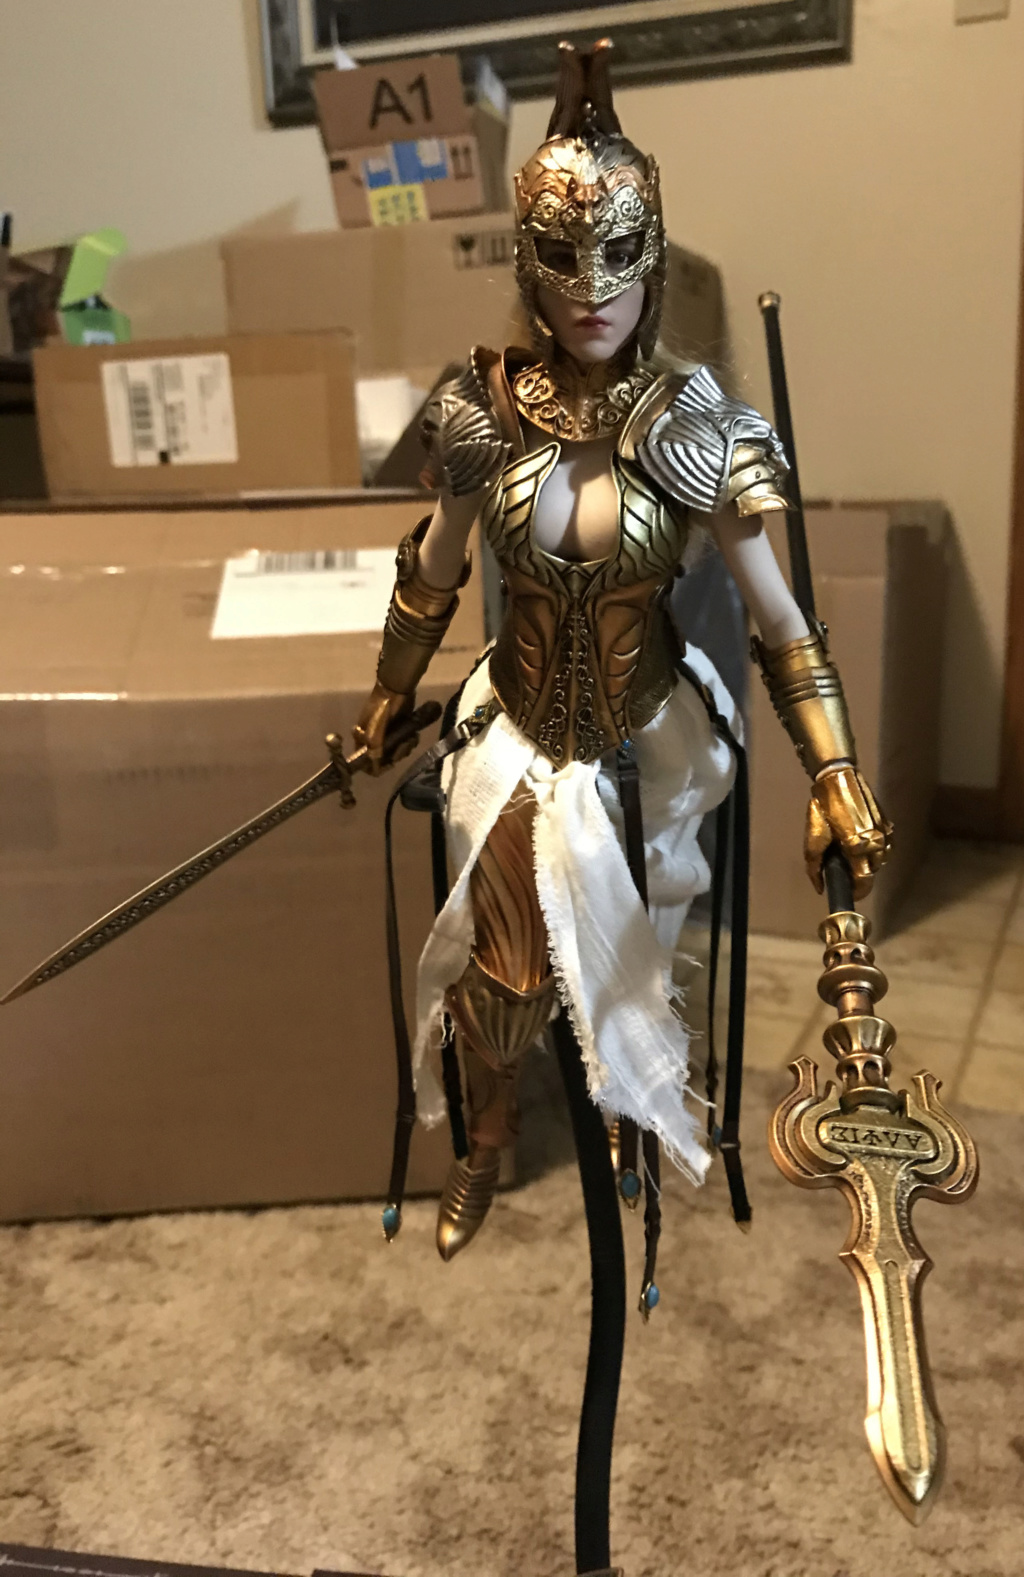 "CooModel - NEW PRODUCT: COO MODEL X HOMER 1/6th scale PANTHEON Athena Goddess of War 12"" Collectible Figure Img_8165"